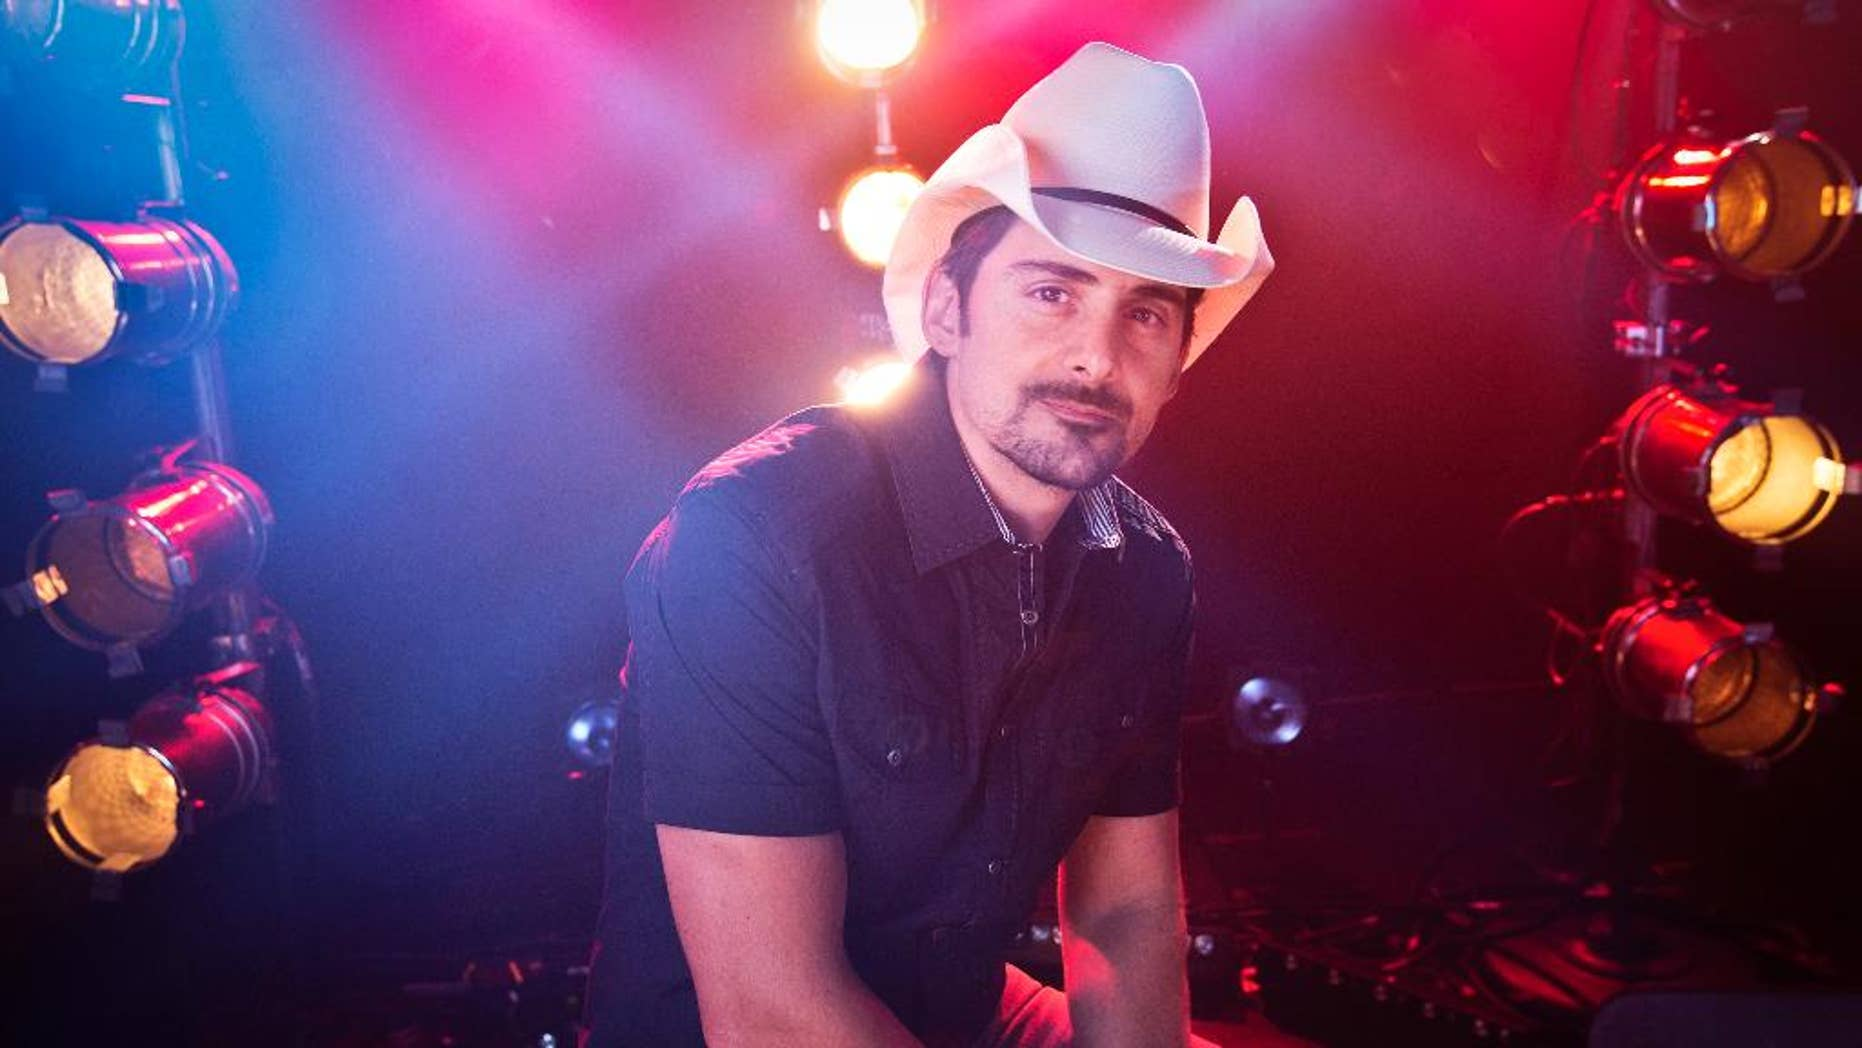 """FILE - In this Aug. 28, 2014 file photo, country musician Brad Paisley poses for a portrait in New York. Paisley is joining """"The Voice"""" this season as an adviser to help fellow country singer Blake Shelton. Paisley will help Shelton mentor his contestants on Team Blake in the competition show that begins Sept. 21 on NBC. (Photo by Amy Sussman/Invision/AP, File)"""